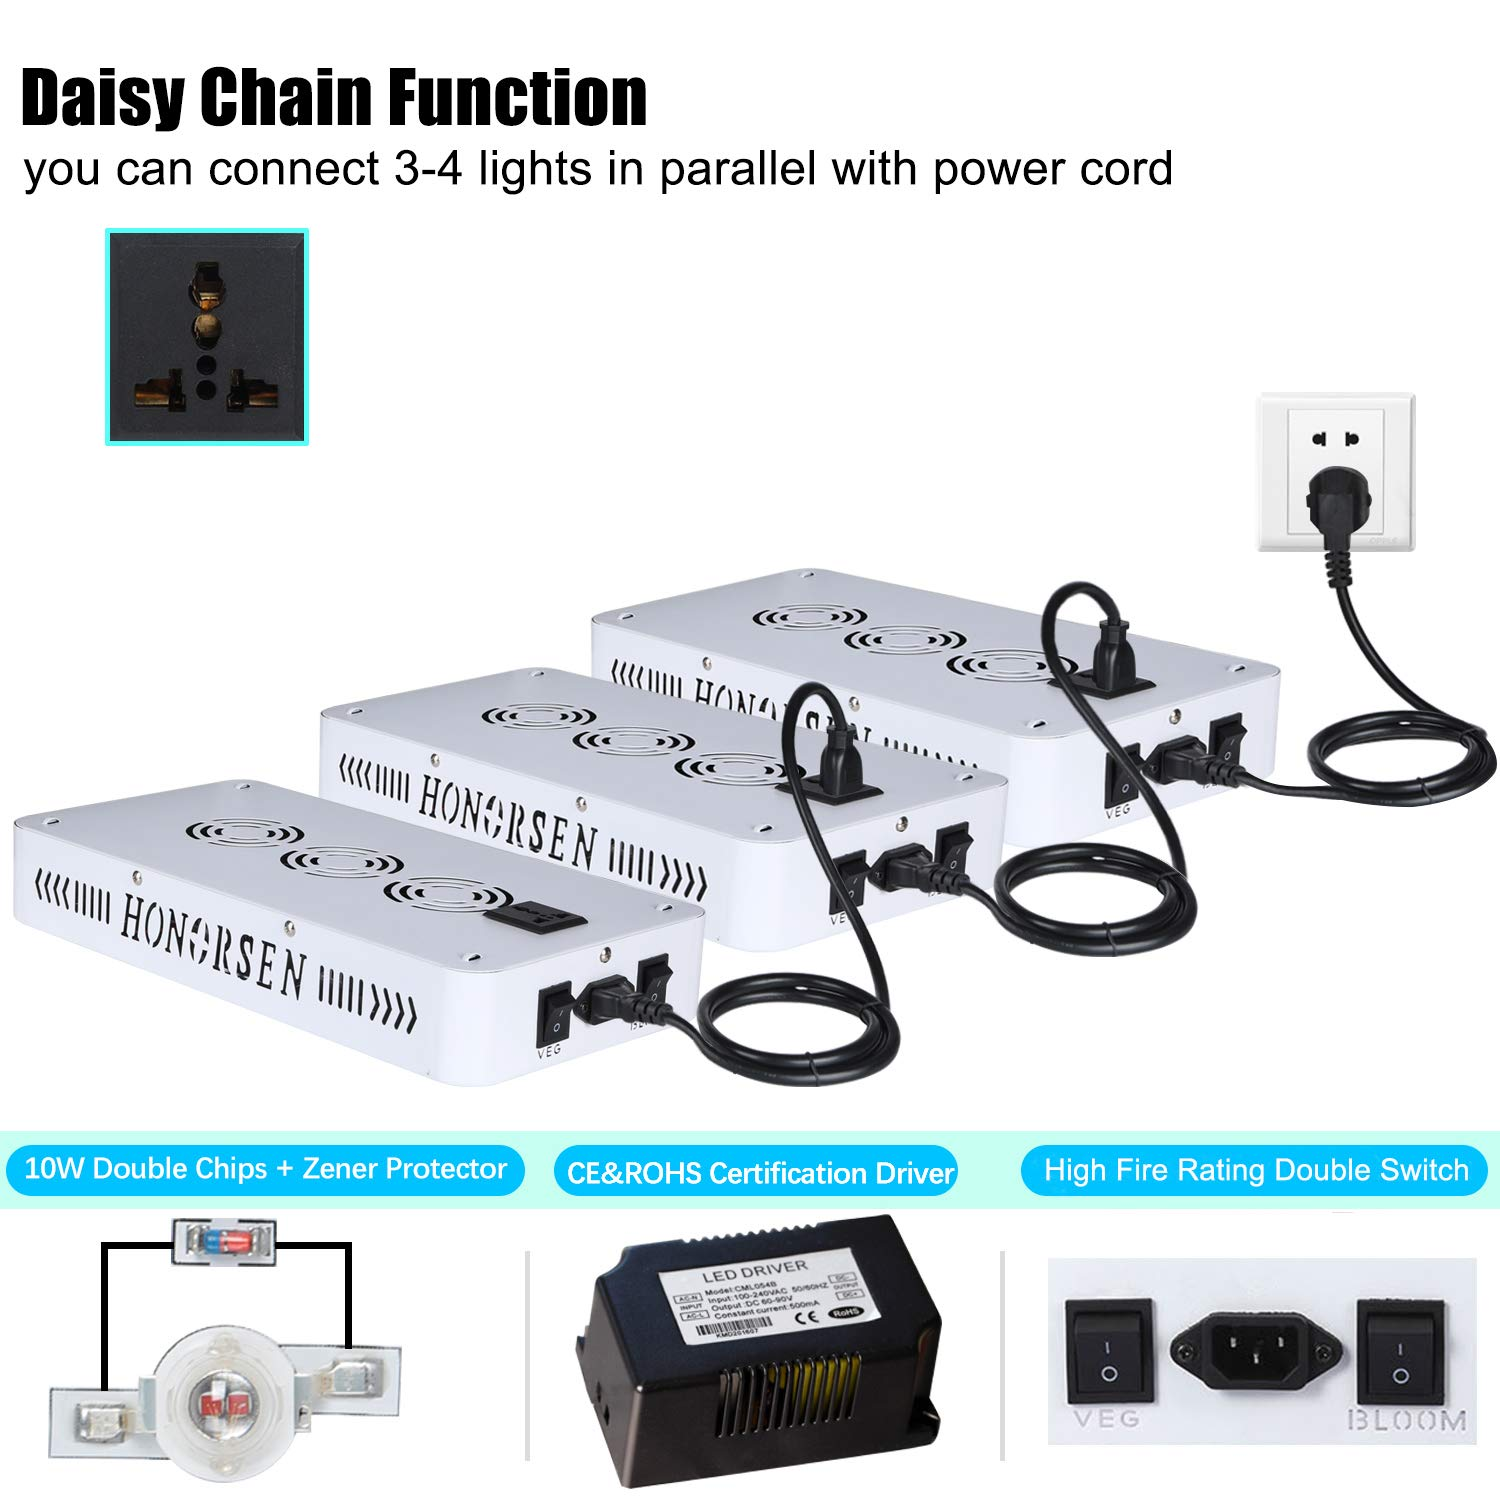 Dual Chip 10W LEDs HONORSEN 600W Led Grow Light Full Spectrum Led Growing Light Double Switch Veg and Bloom Plant Growing Lamps with Daisy Chain Plant Light for Indoor Plant Veg/&Flower